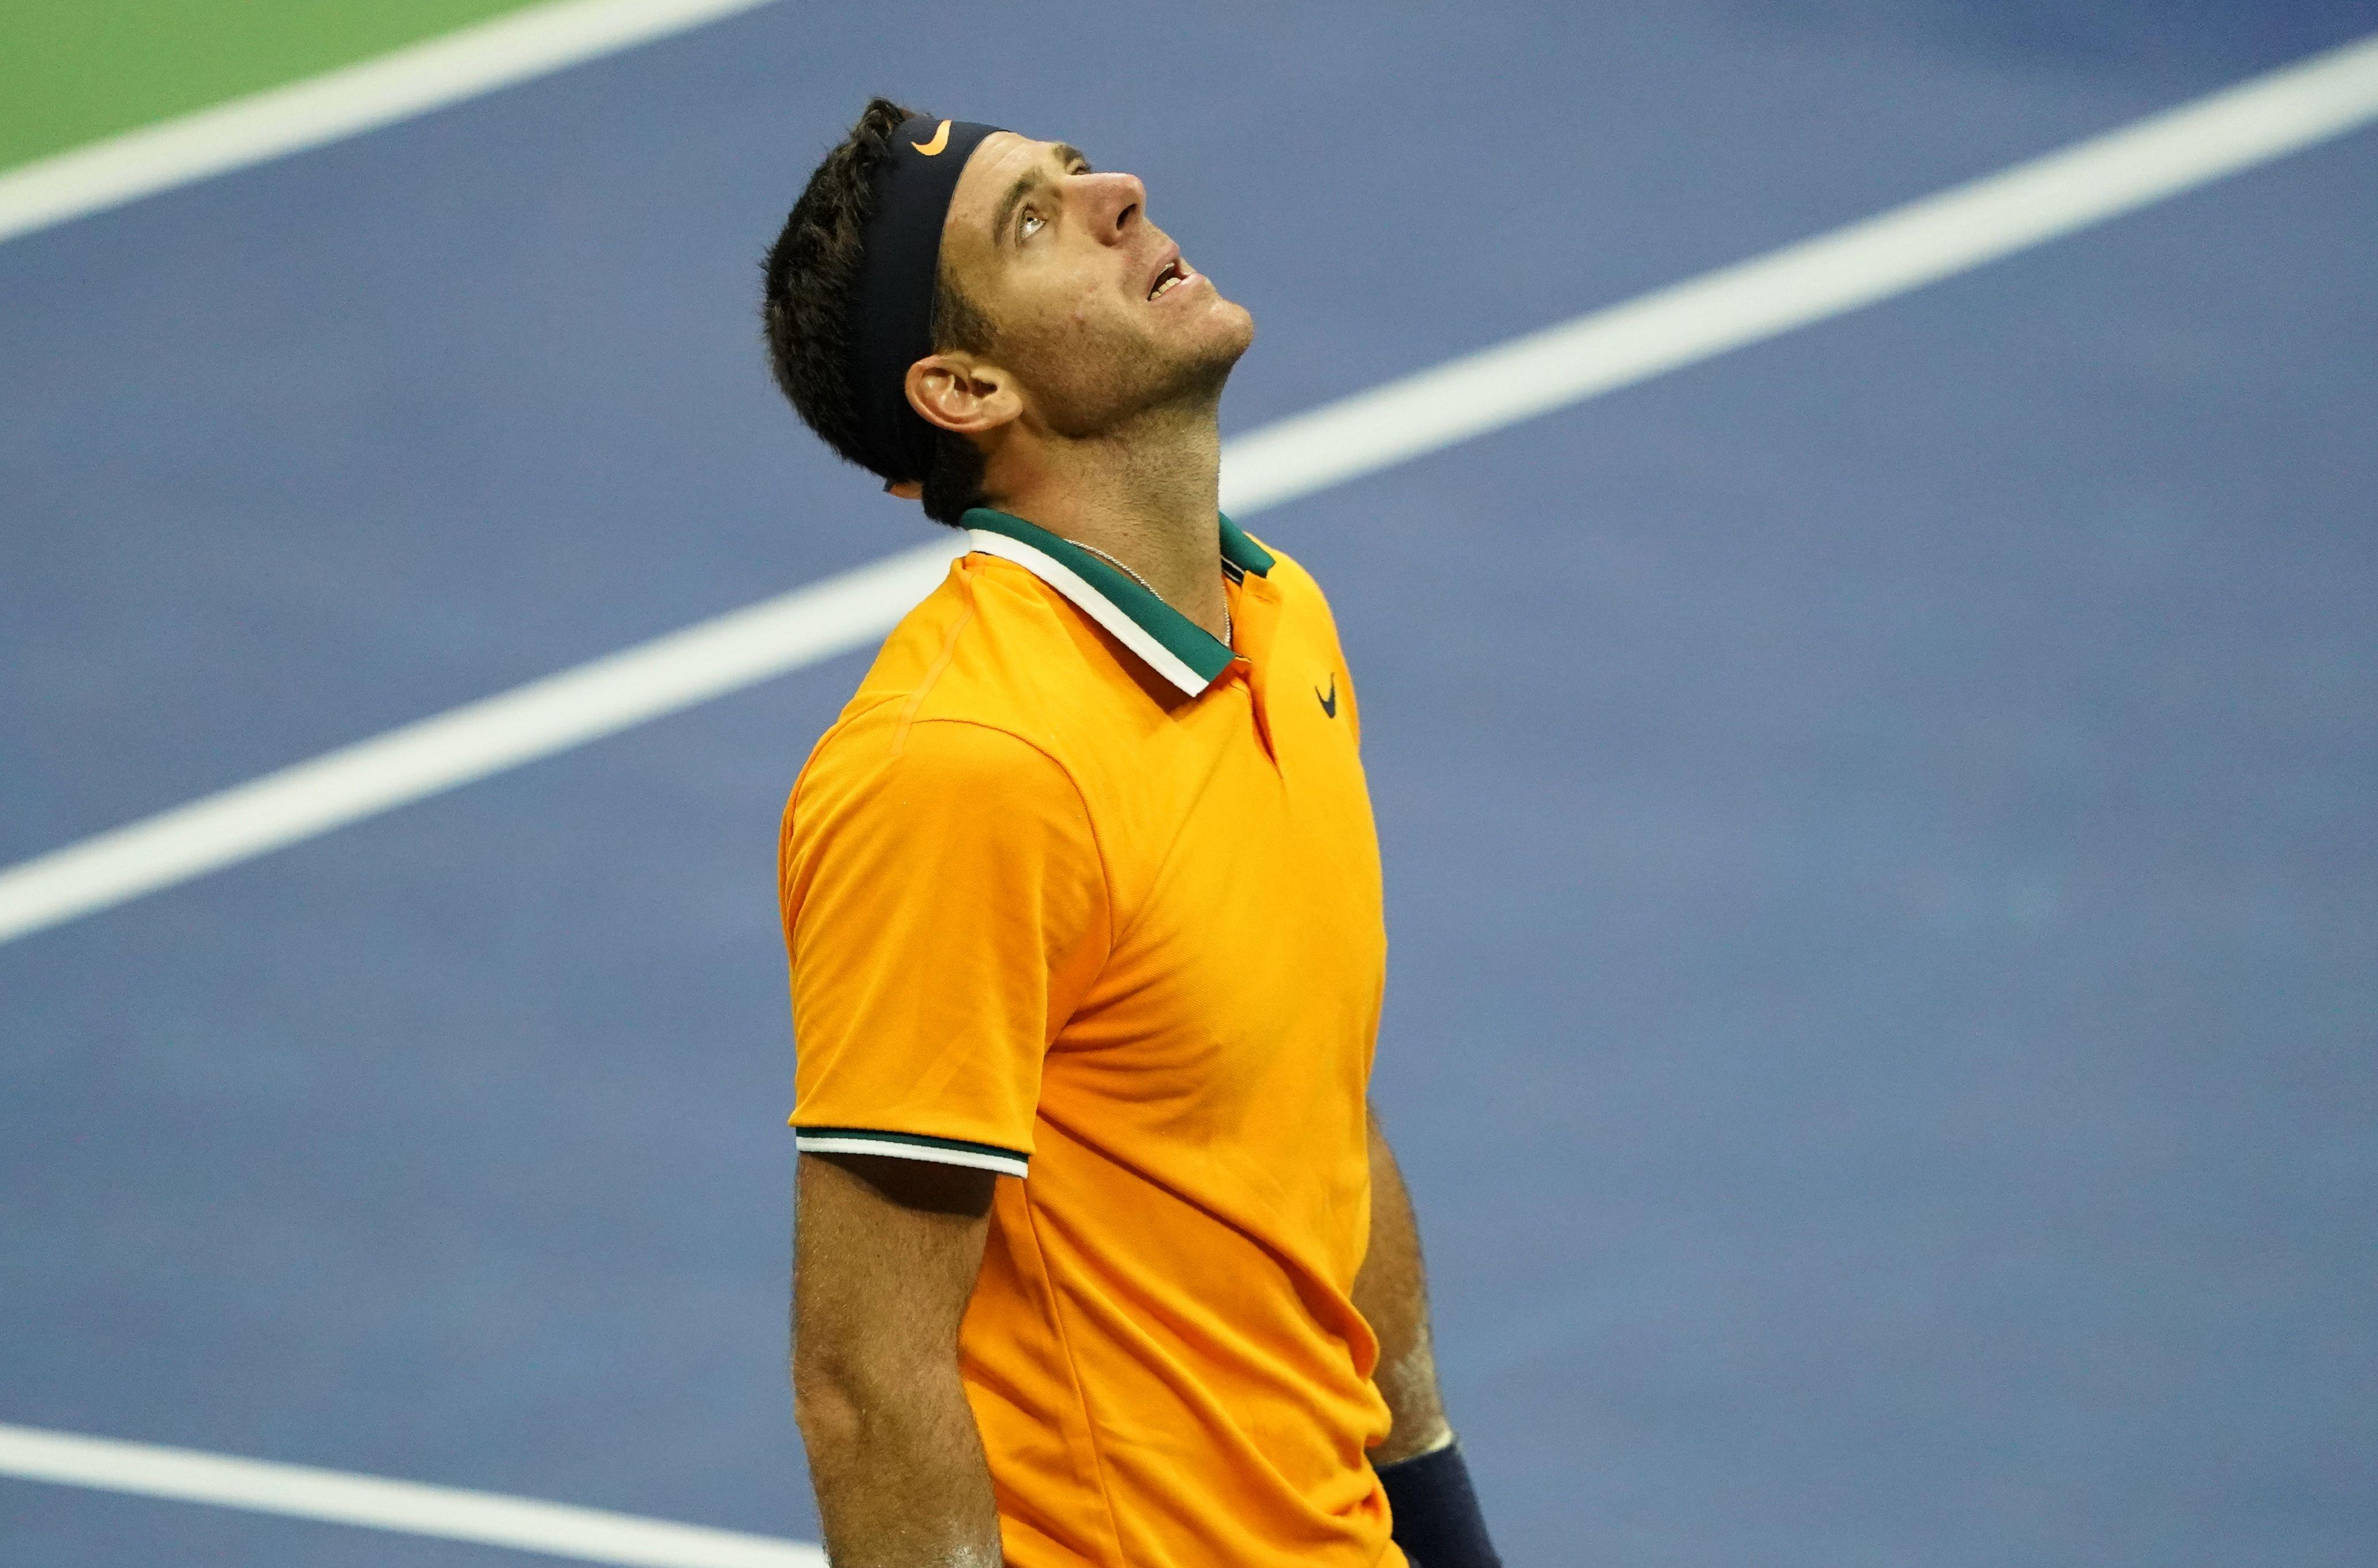 Novak Djokovic's happiness was Juan Martin del Potro's disappointment in New York